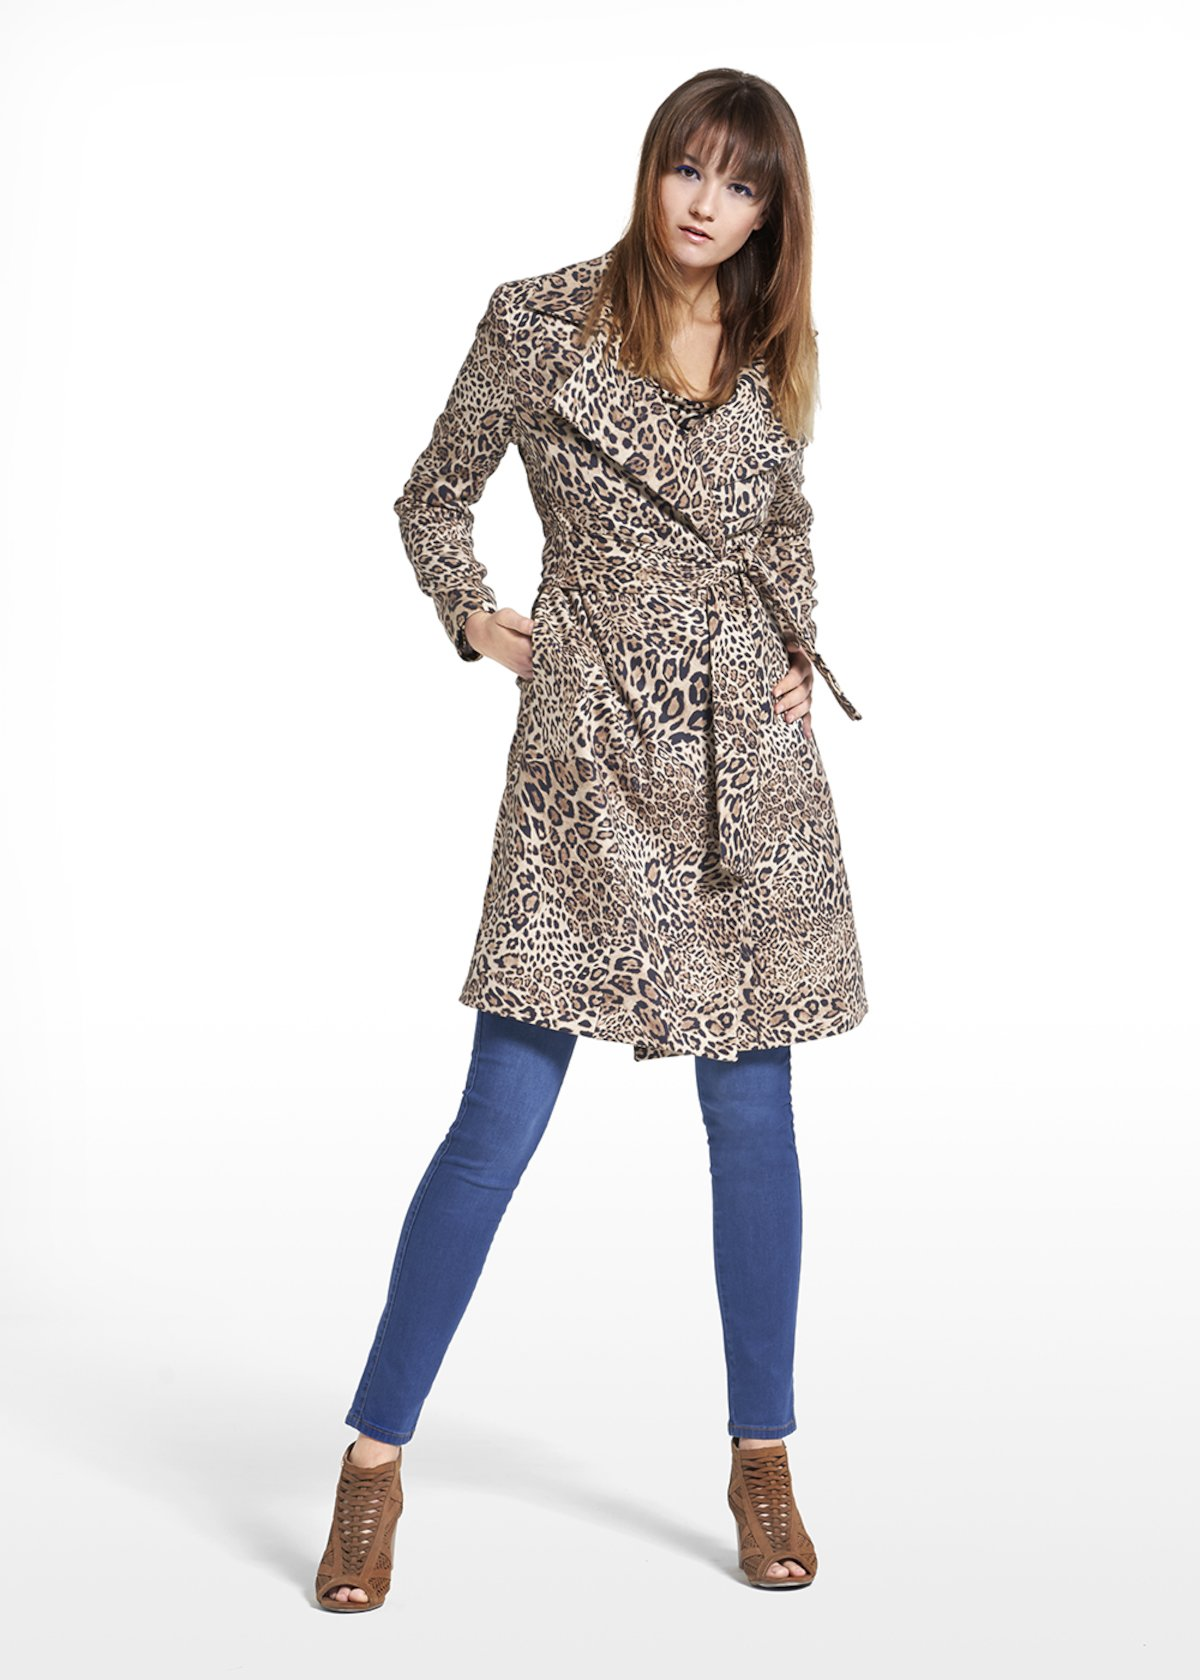 Coat Camilo in patterned spotted fabric - Beige / Black Animalier - Woman - Category image